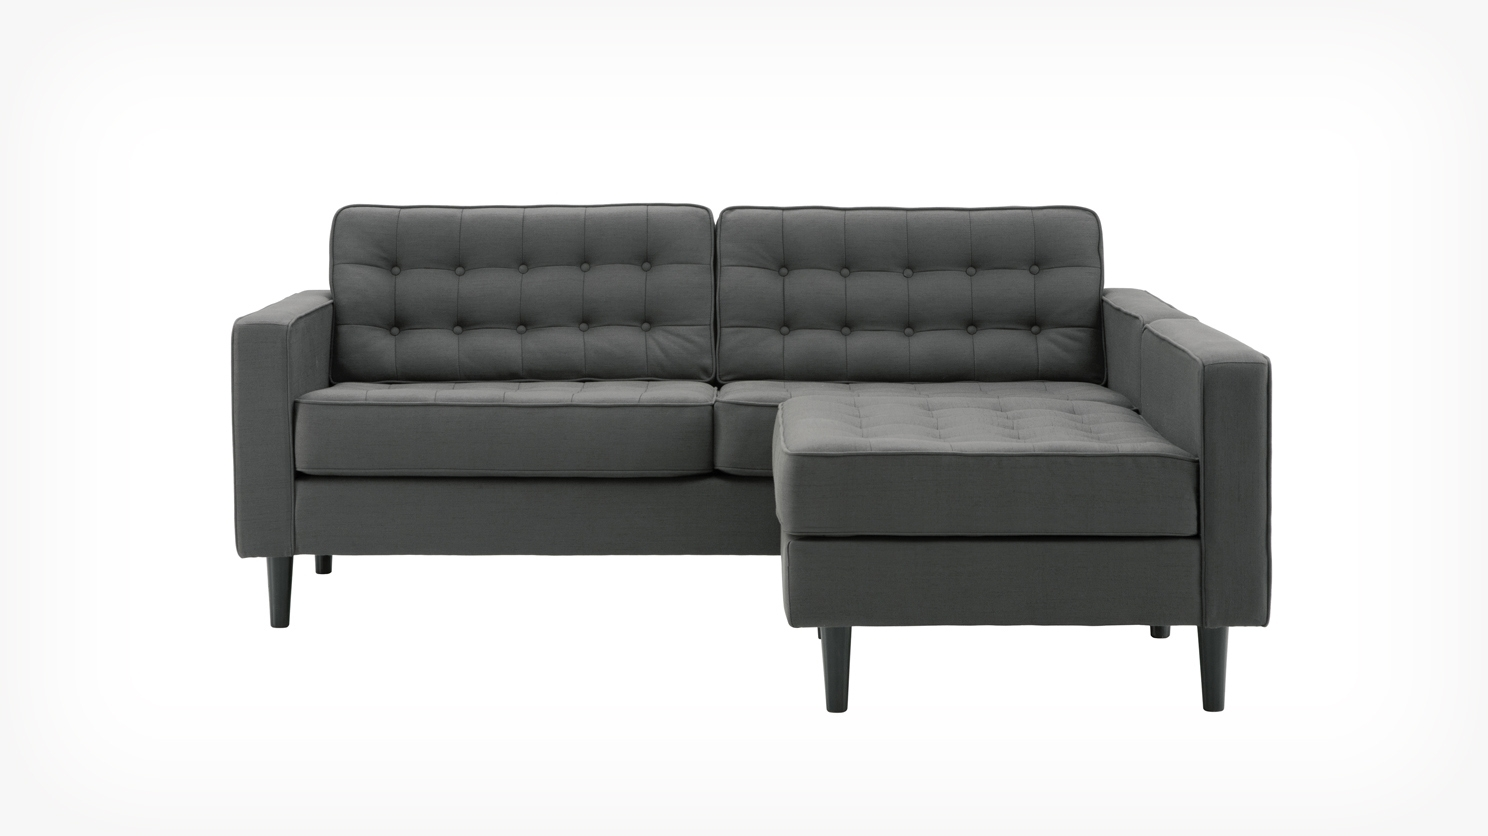 Eq3   Reverie Apartment 2 Piece Sectional Sofa With Chaise – Fabric Regarding Apartment Sectional Sofas With Chaise (View 2 of 10)